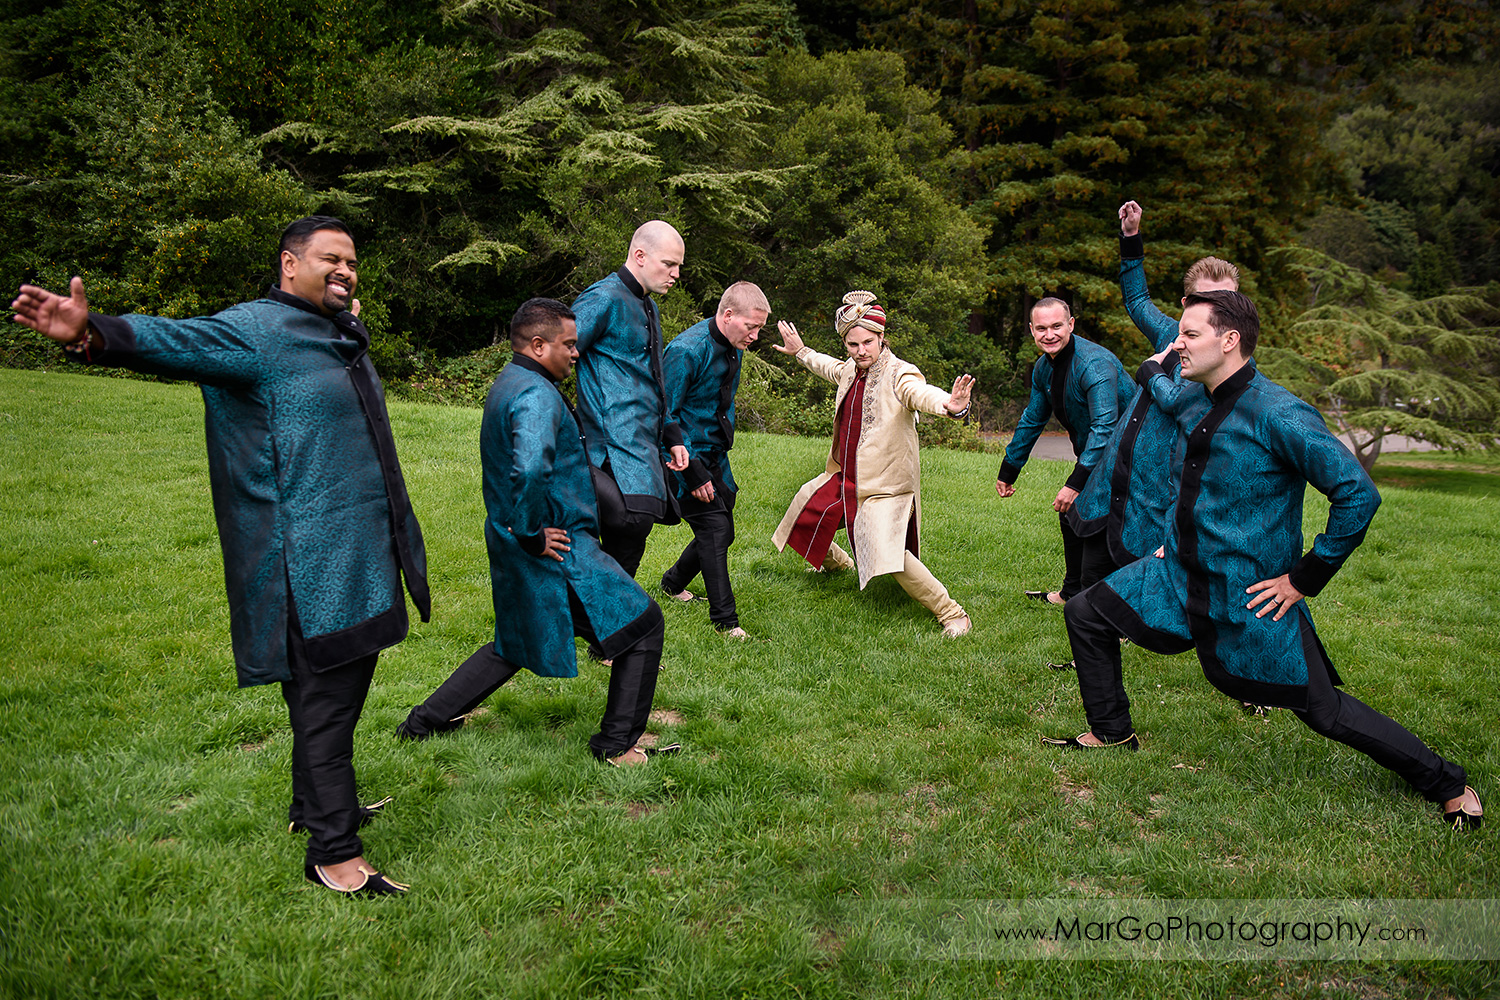 groom and groomsmen having fun at Indian wedding at Tilden Regional Park, Berkeley